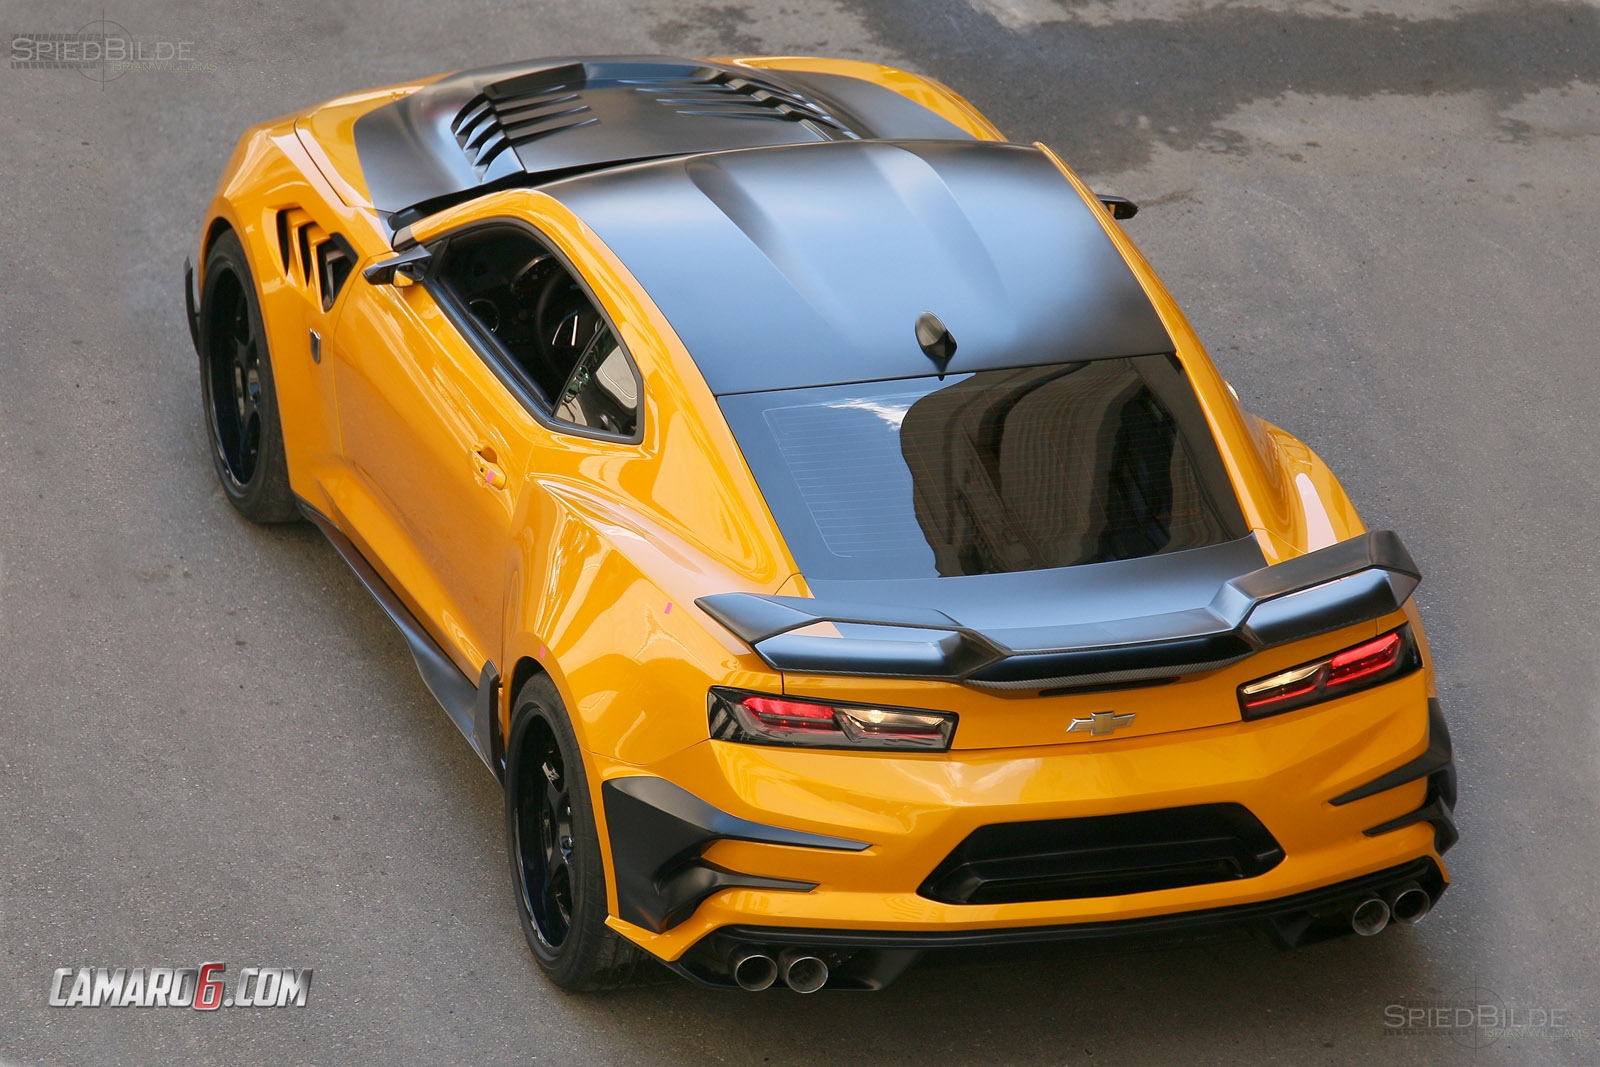 first full look at new bumblebee camaro for transformers 5 camaro6. Black Bedroom Furniture Sets. Home Design Ideas